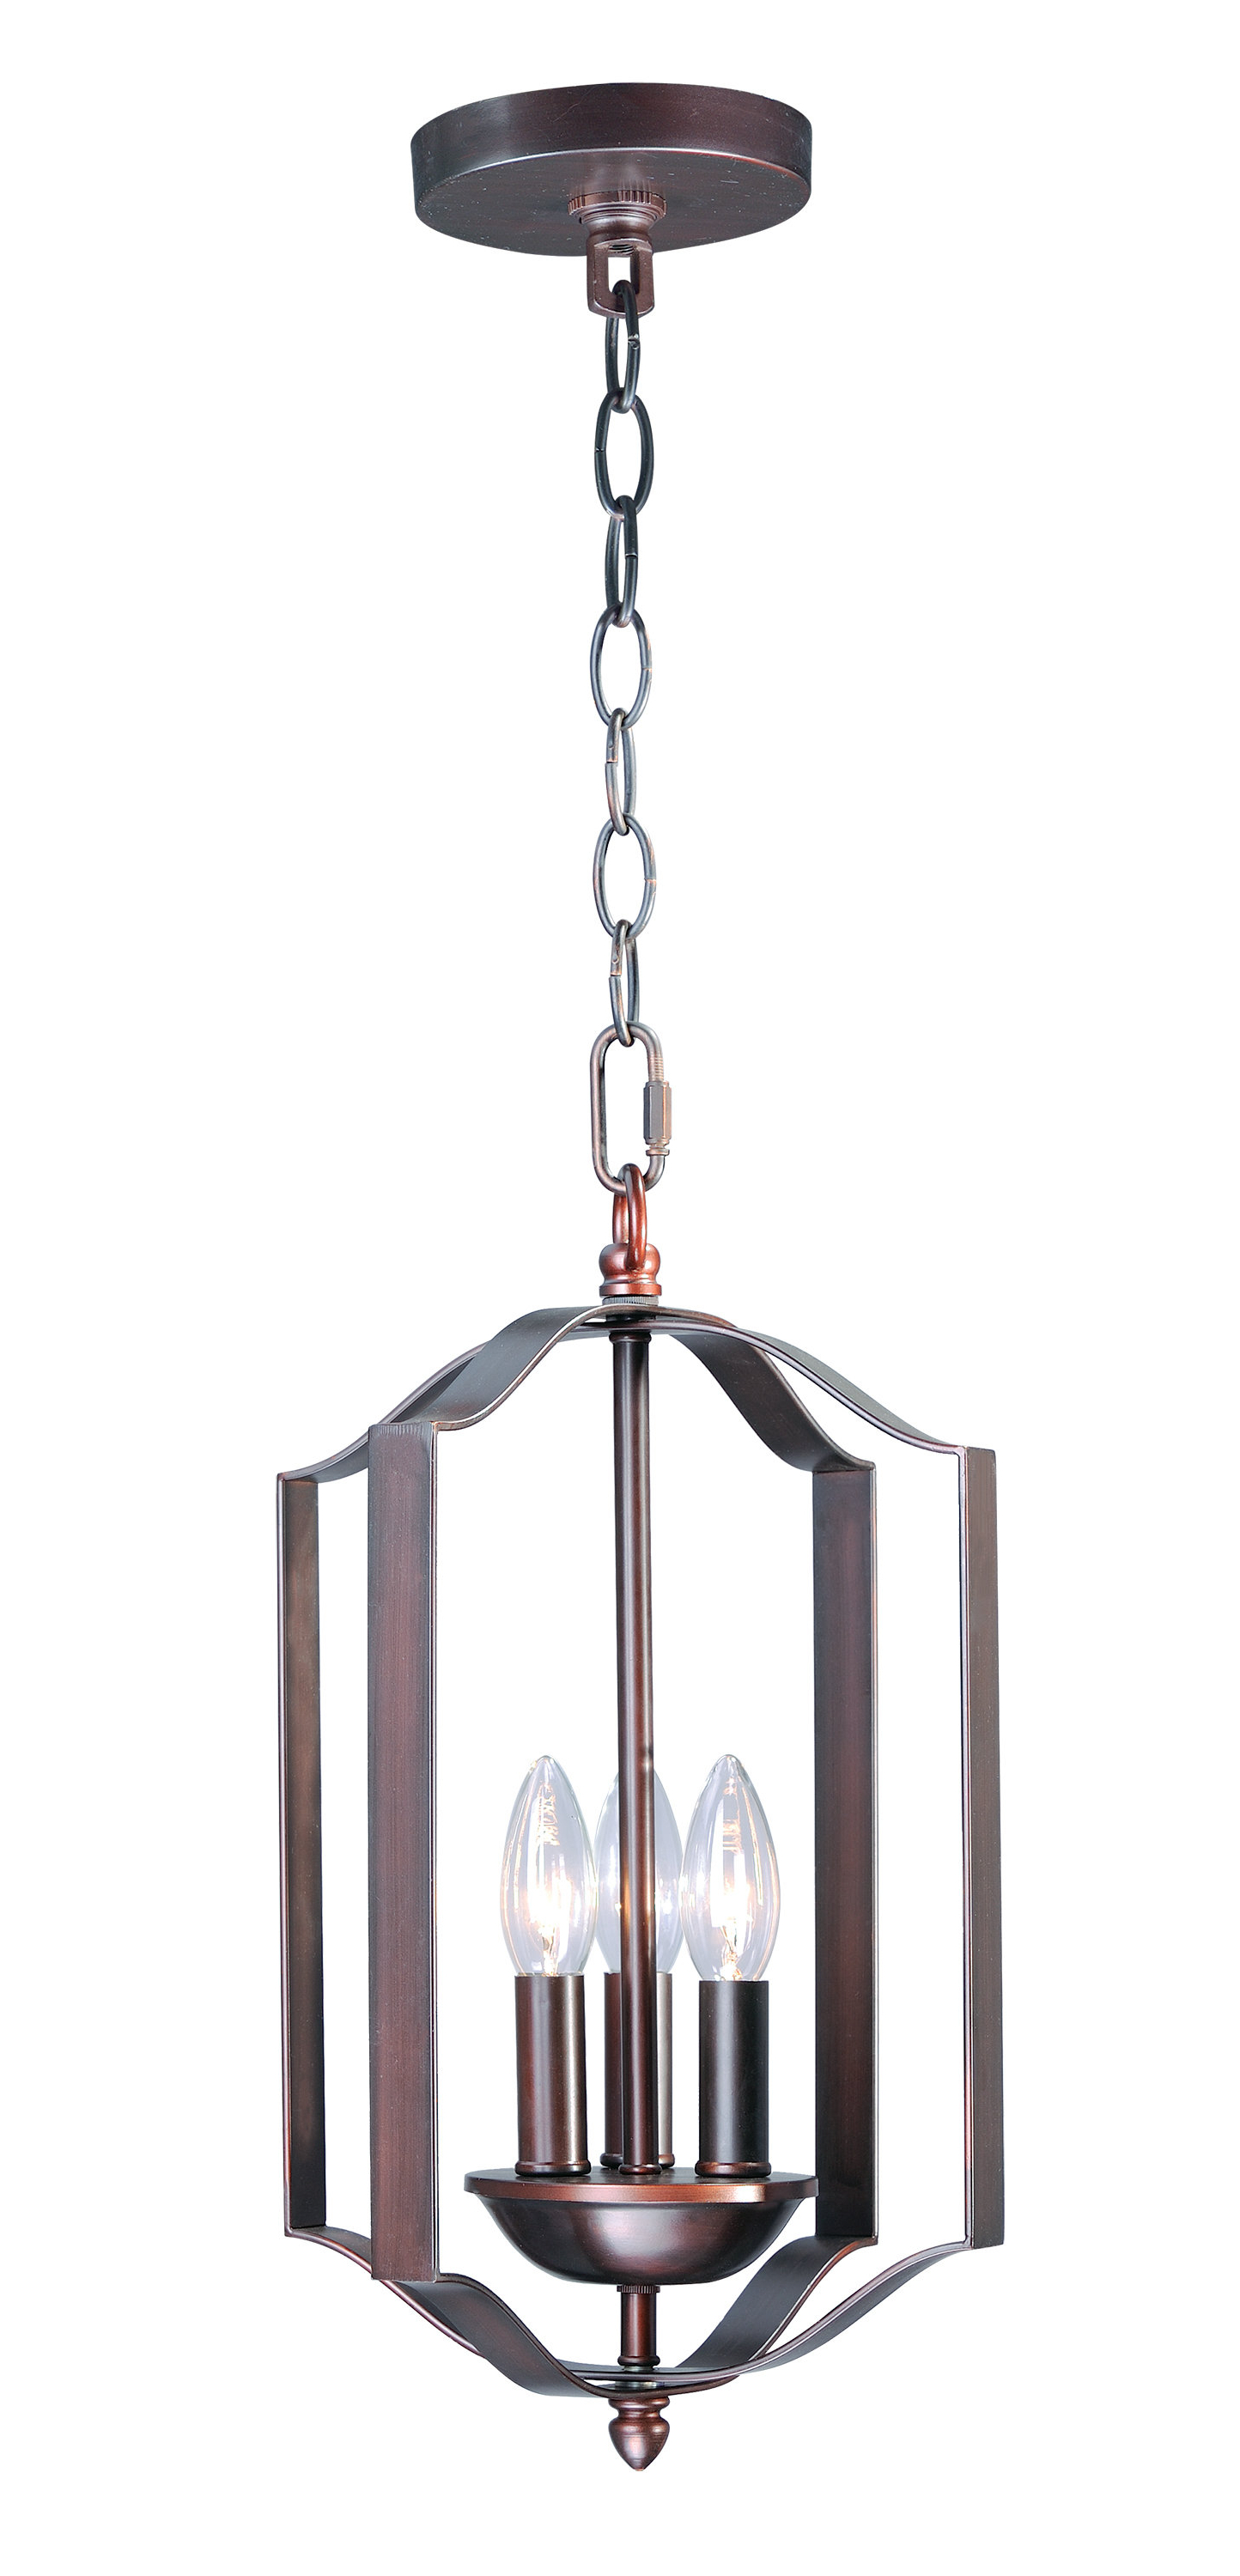 Mielke 3 Light Single Geometric Chandelier With Regard To Well Known Akash Industrial Vintage 1 Light Geometric Pendants (View 11 of 25)